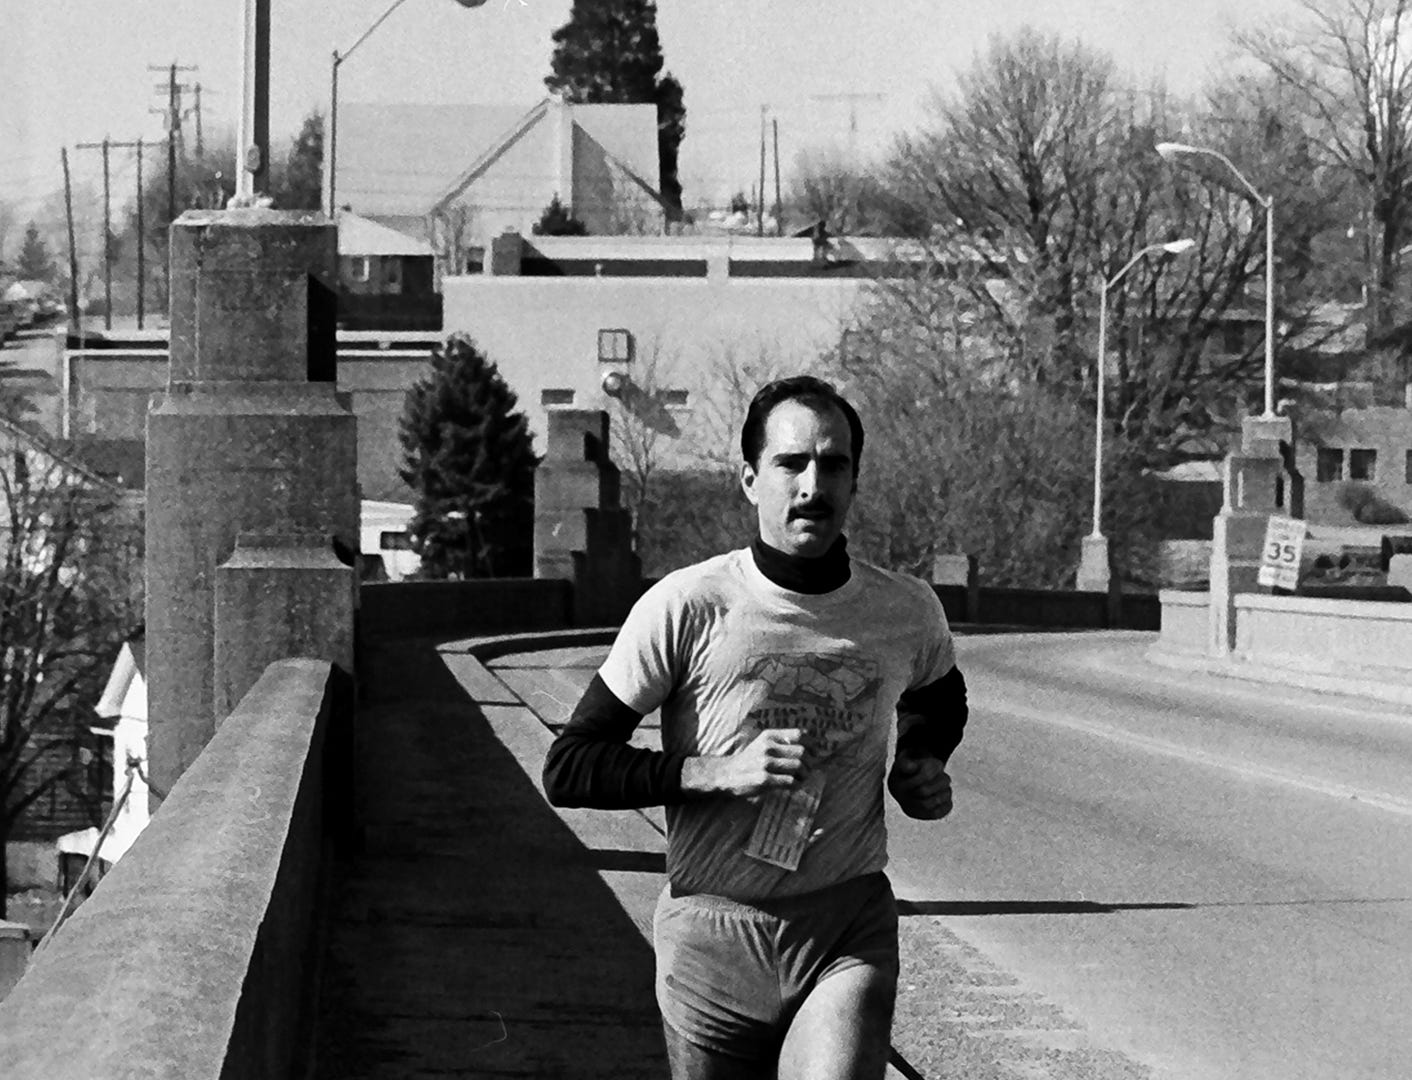 In 1985, people ran on the Veterans Memorial bridge between Columbia and Wrightsville.